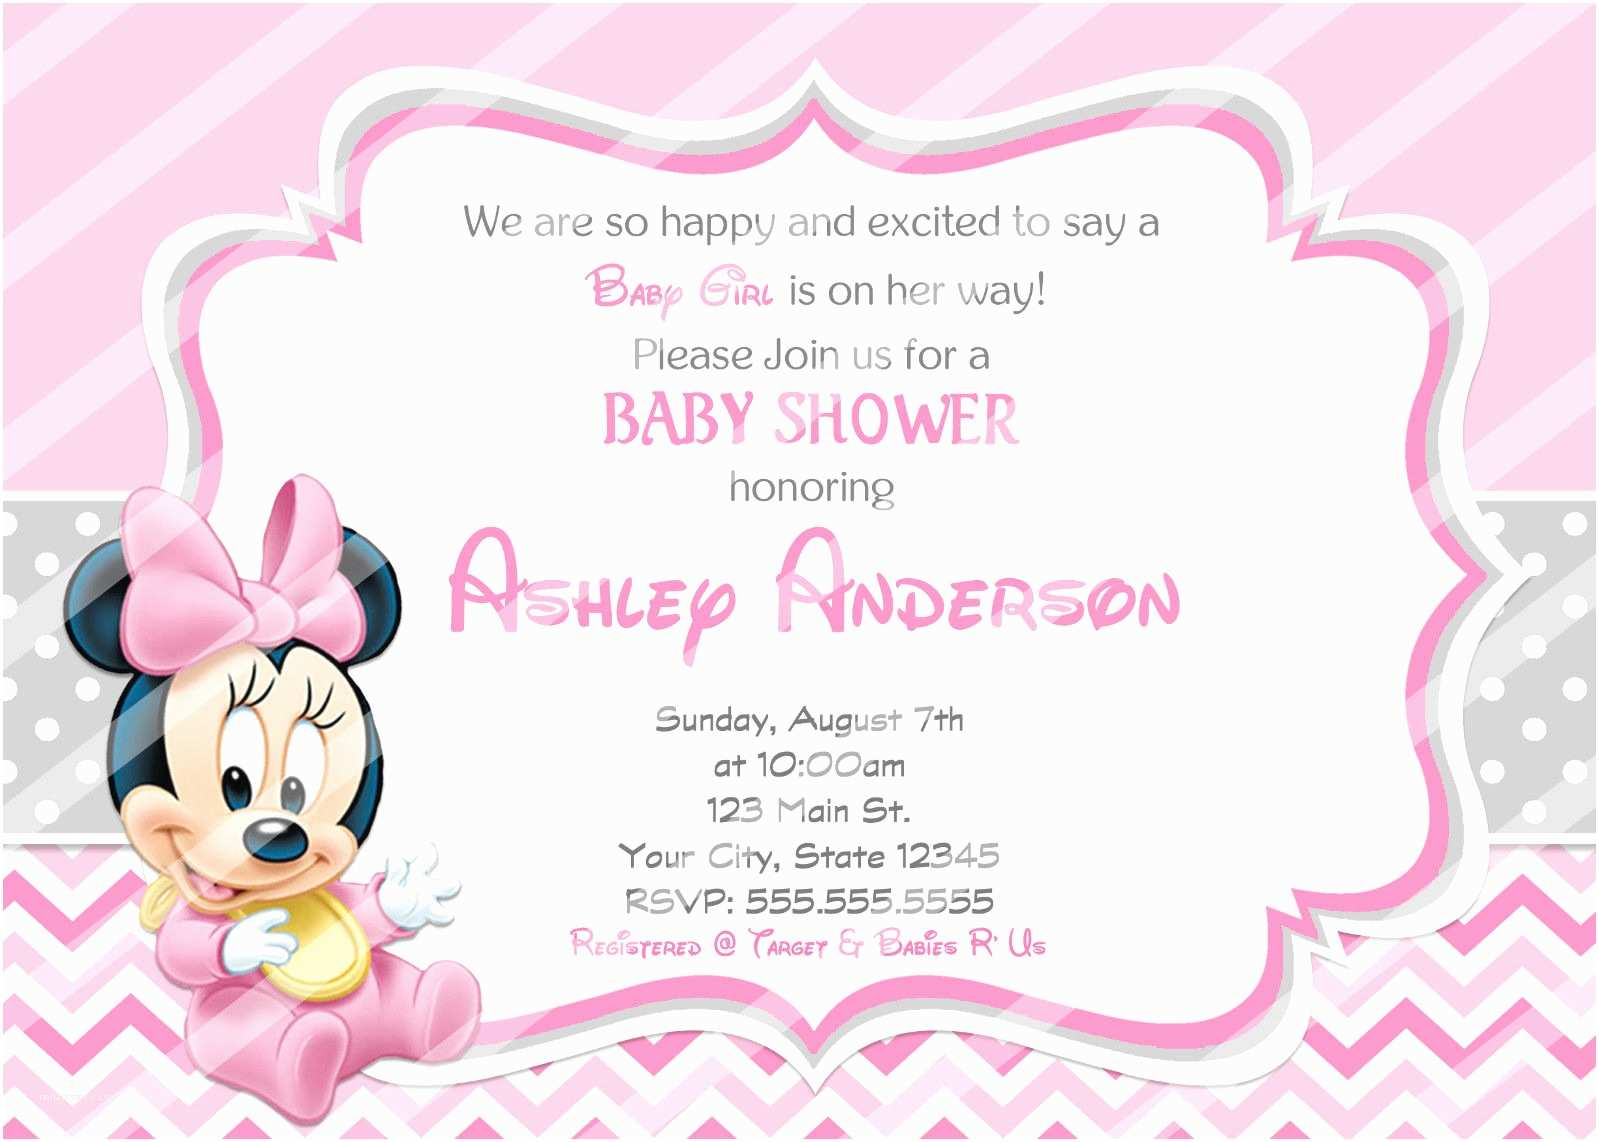 Minnie Mouse Baby Shower Invitations Baby Minnie Mouse Baby Shower Invitations and Similar Items